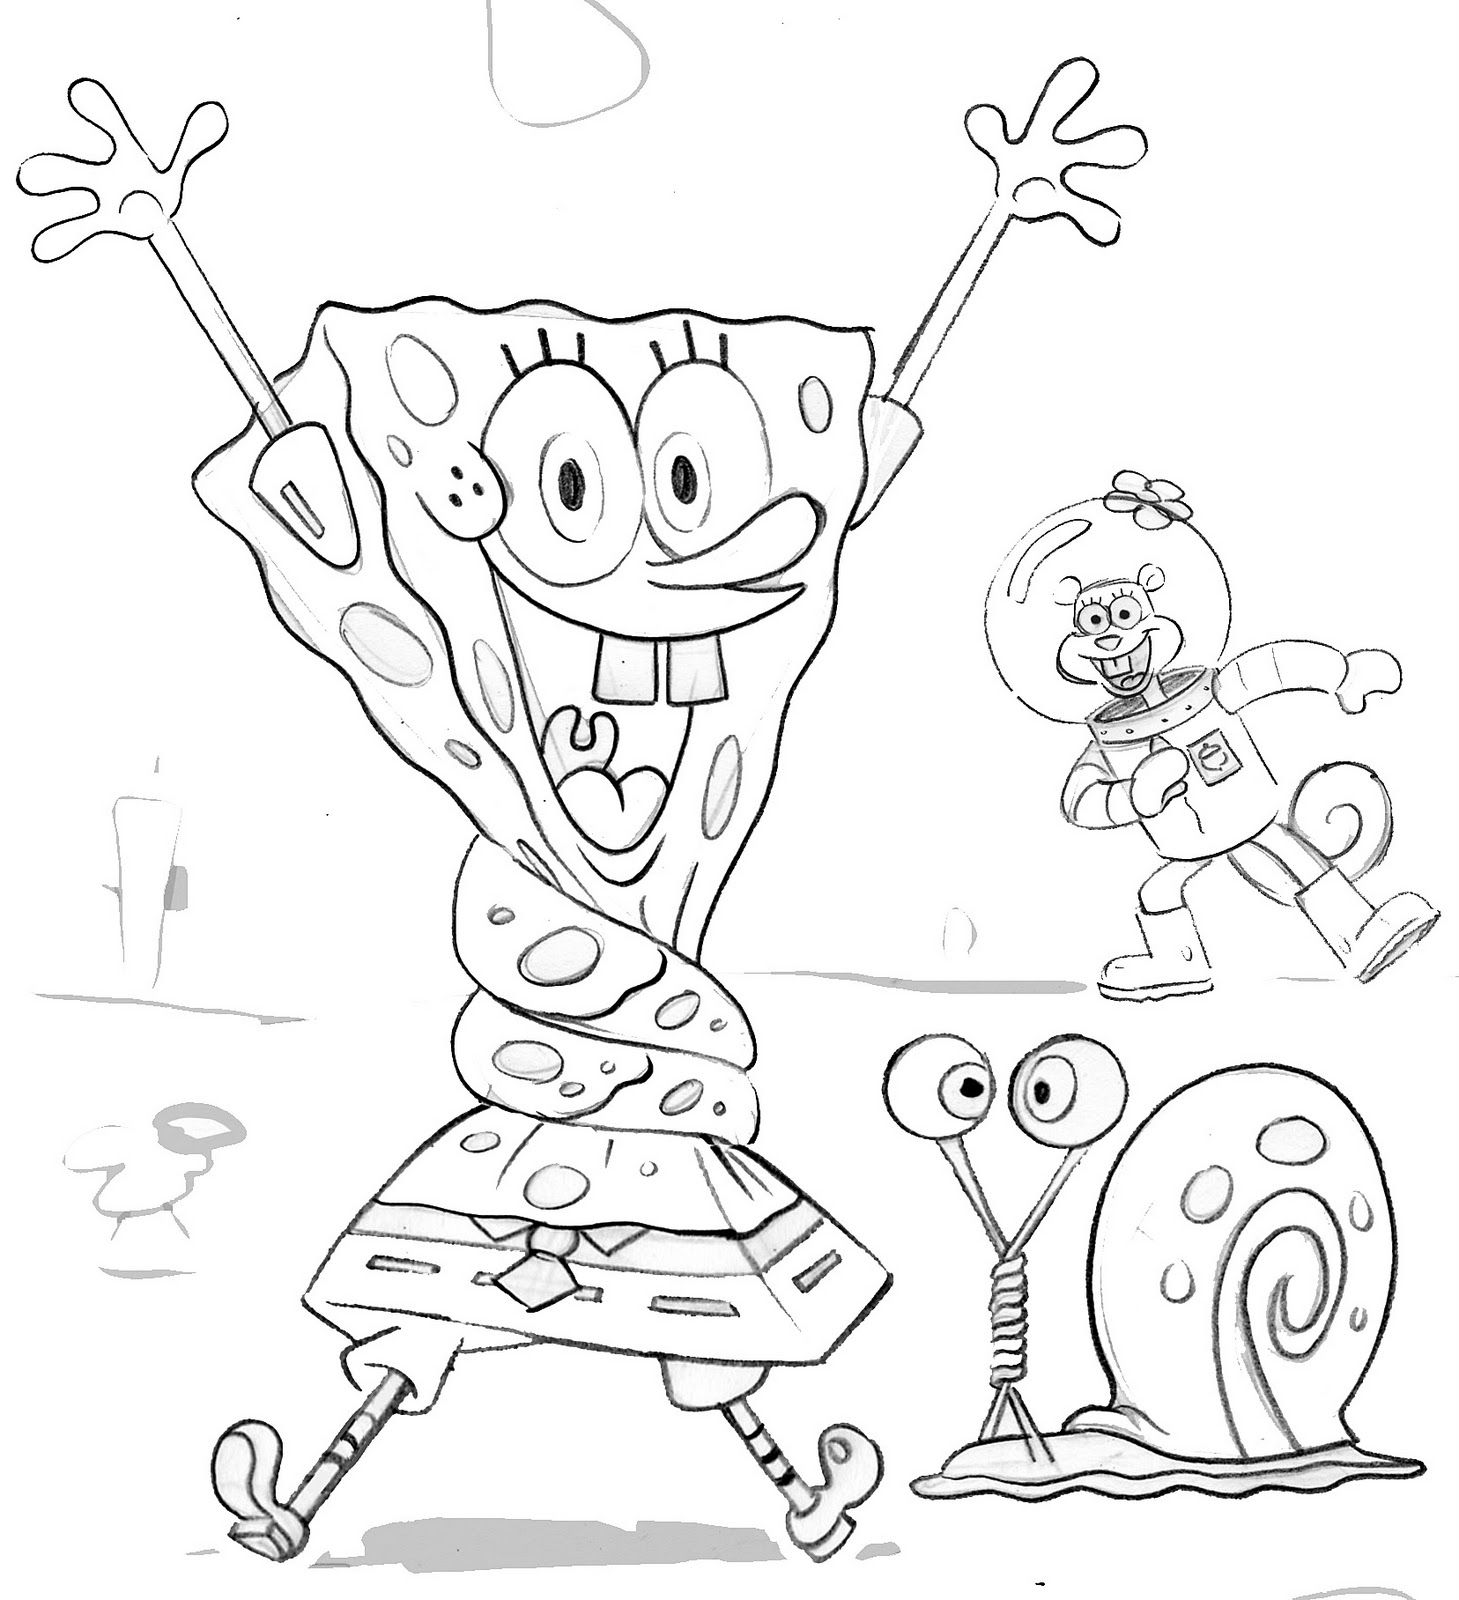 Find thousands of spongebob coloring pages, spongebob squarepants ...